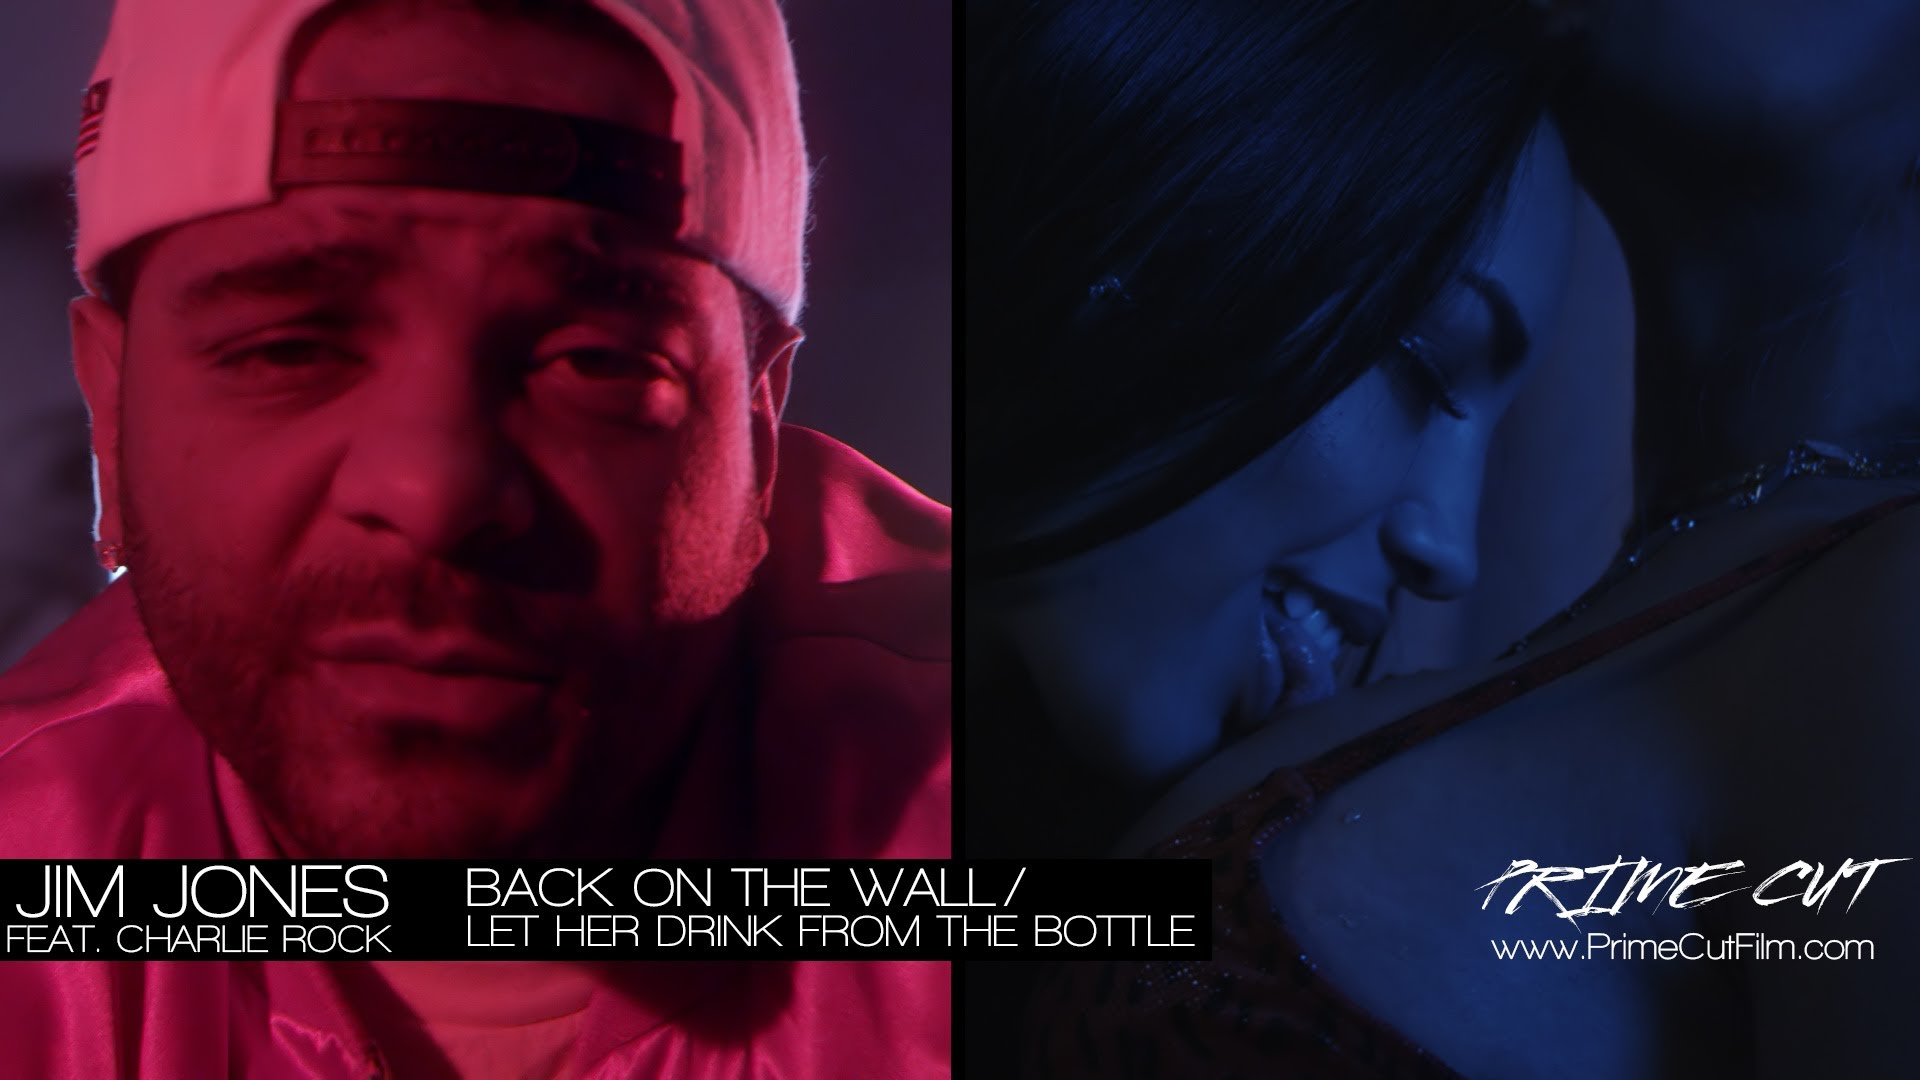 Jim Jones – Back On The Wall x Let Her Drink From The Bottle Feat. Charlie Rock